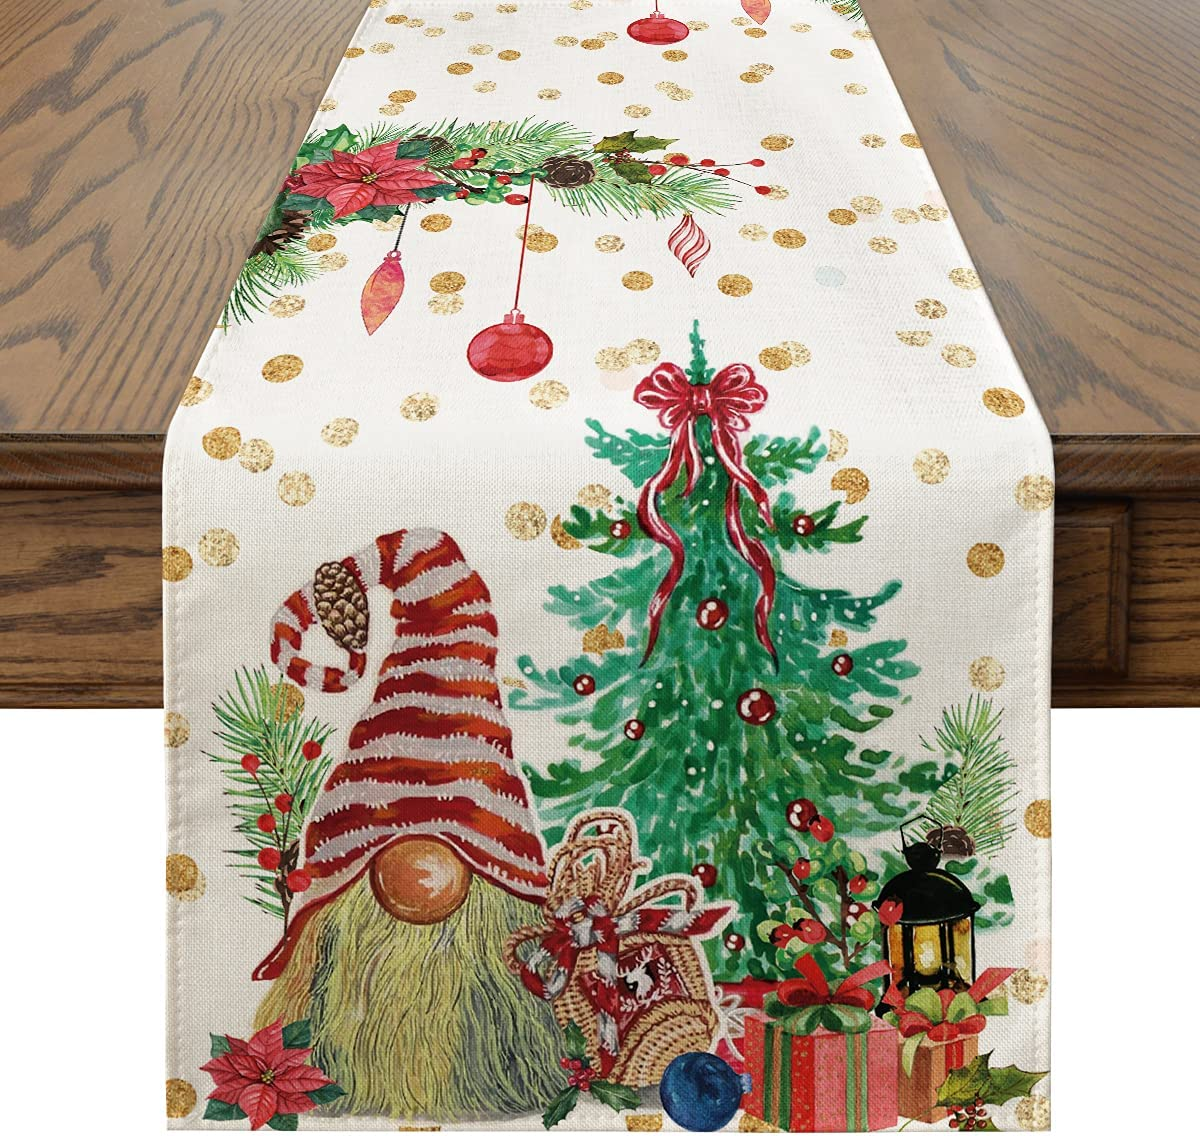 Artoid Mode Gnomes Gift Tree Christmas Table Runner, Seasonal Winter Xmas Holiday Kitchen Dining Table Decoration for Indoor Outdoor Home Party Decor 13 x 72 Inch